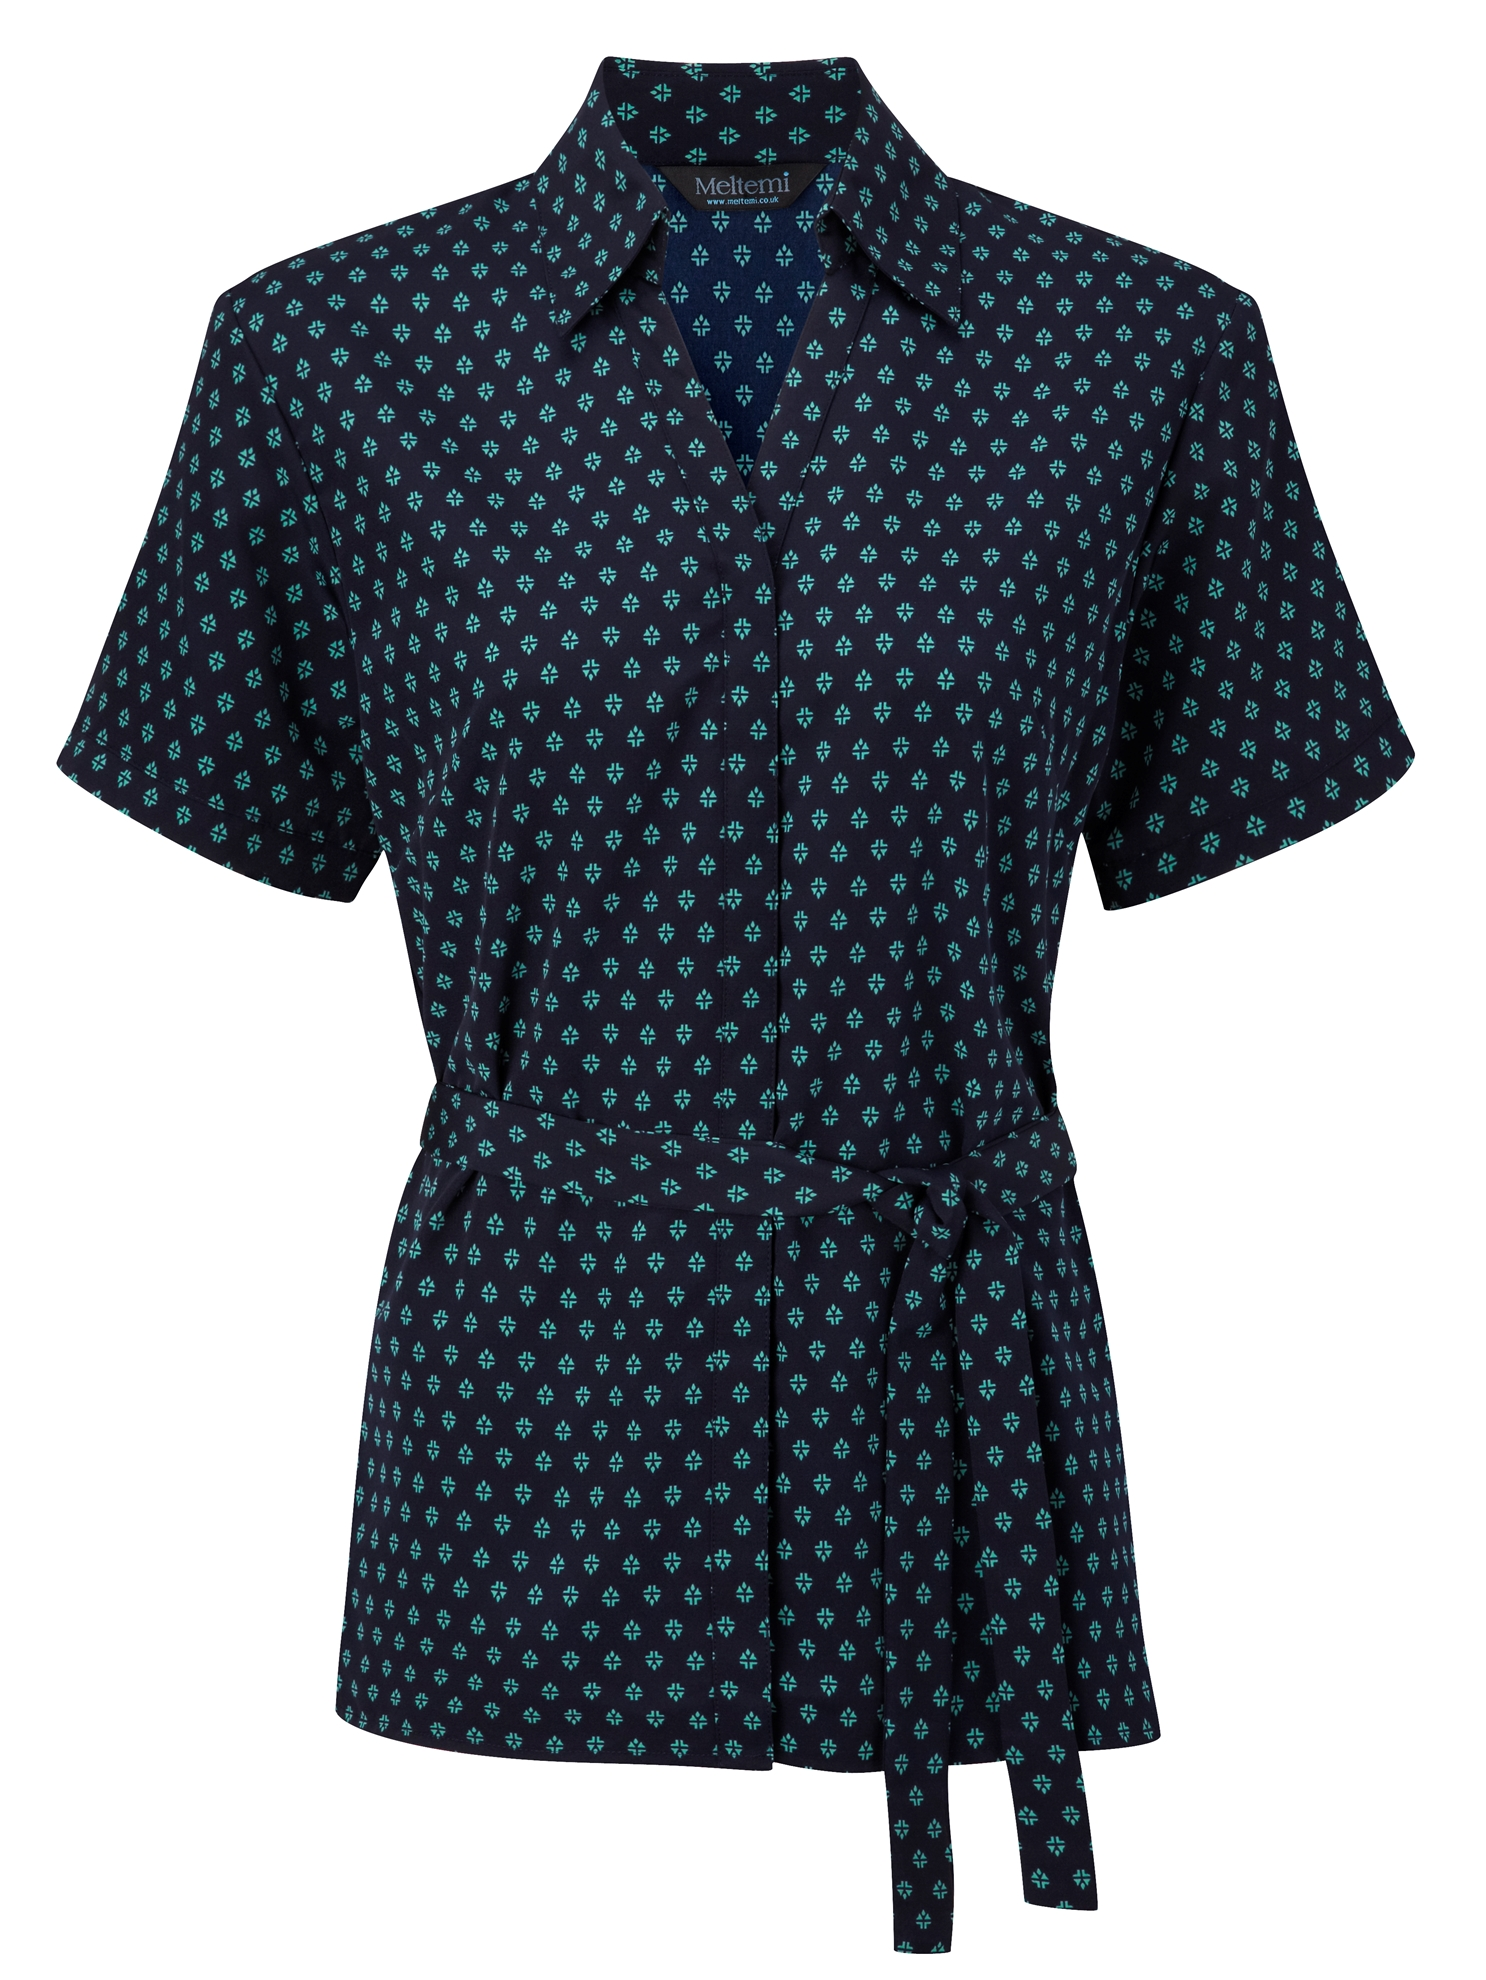 Picture of Looser Style Polyester Blouse - Navy/Aqua Fleur Print